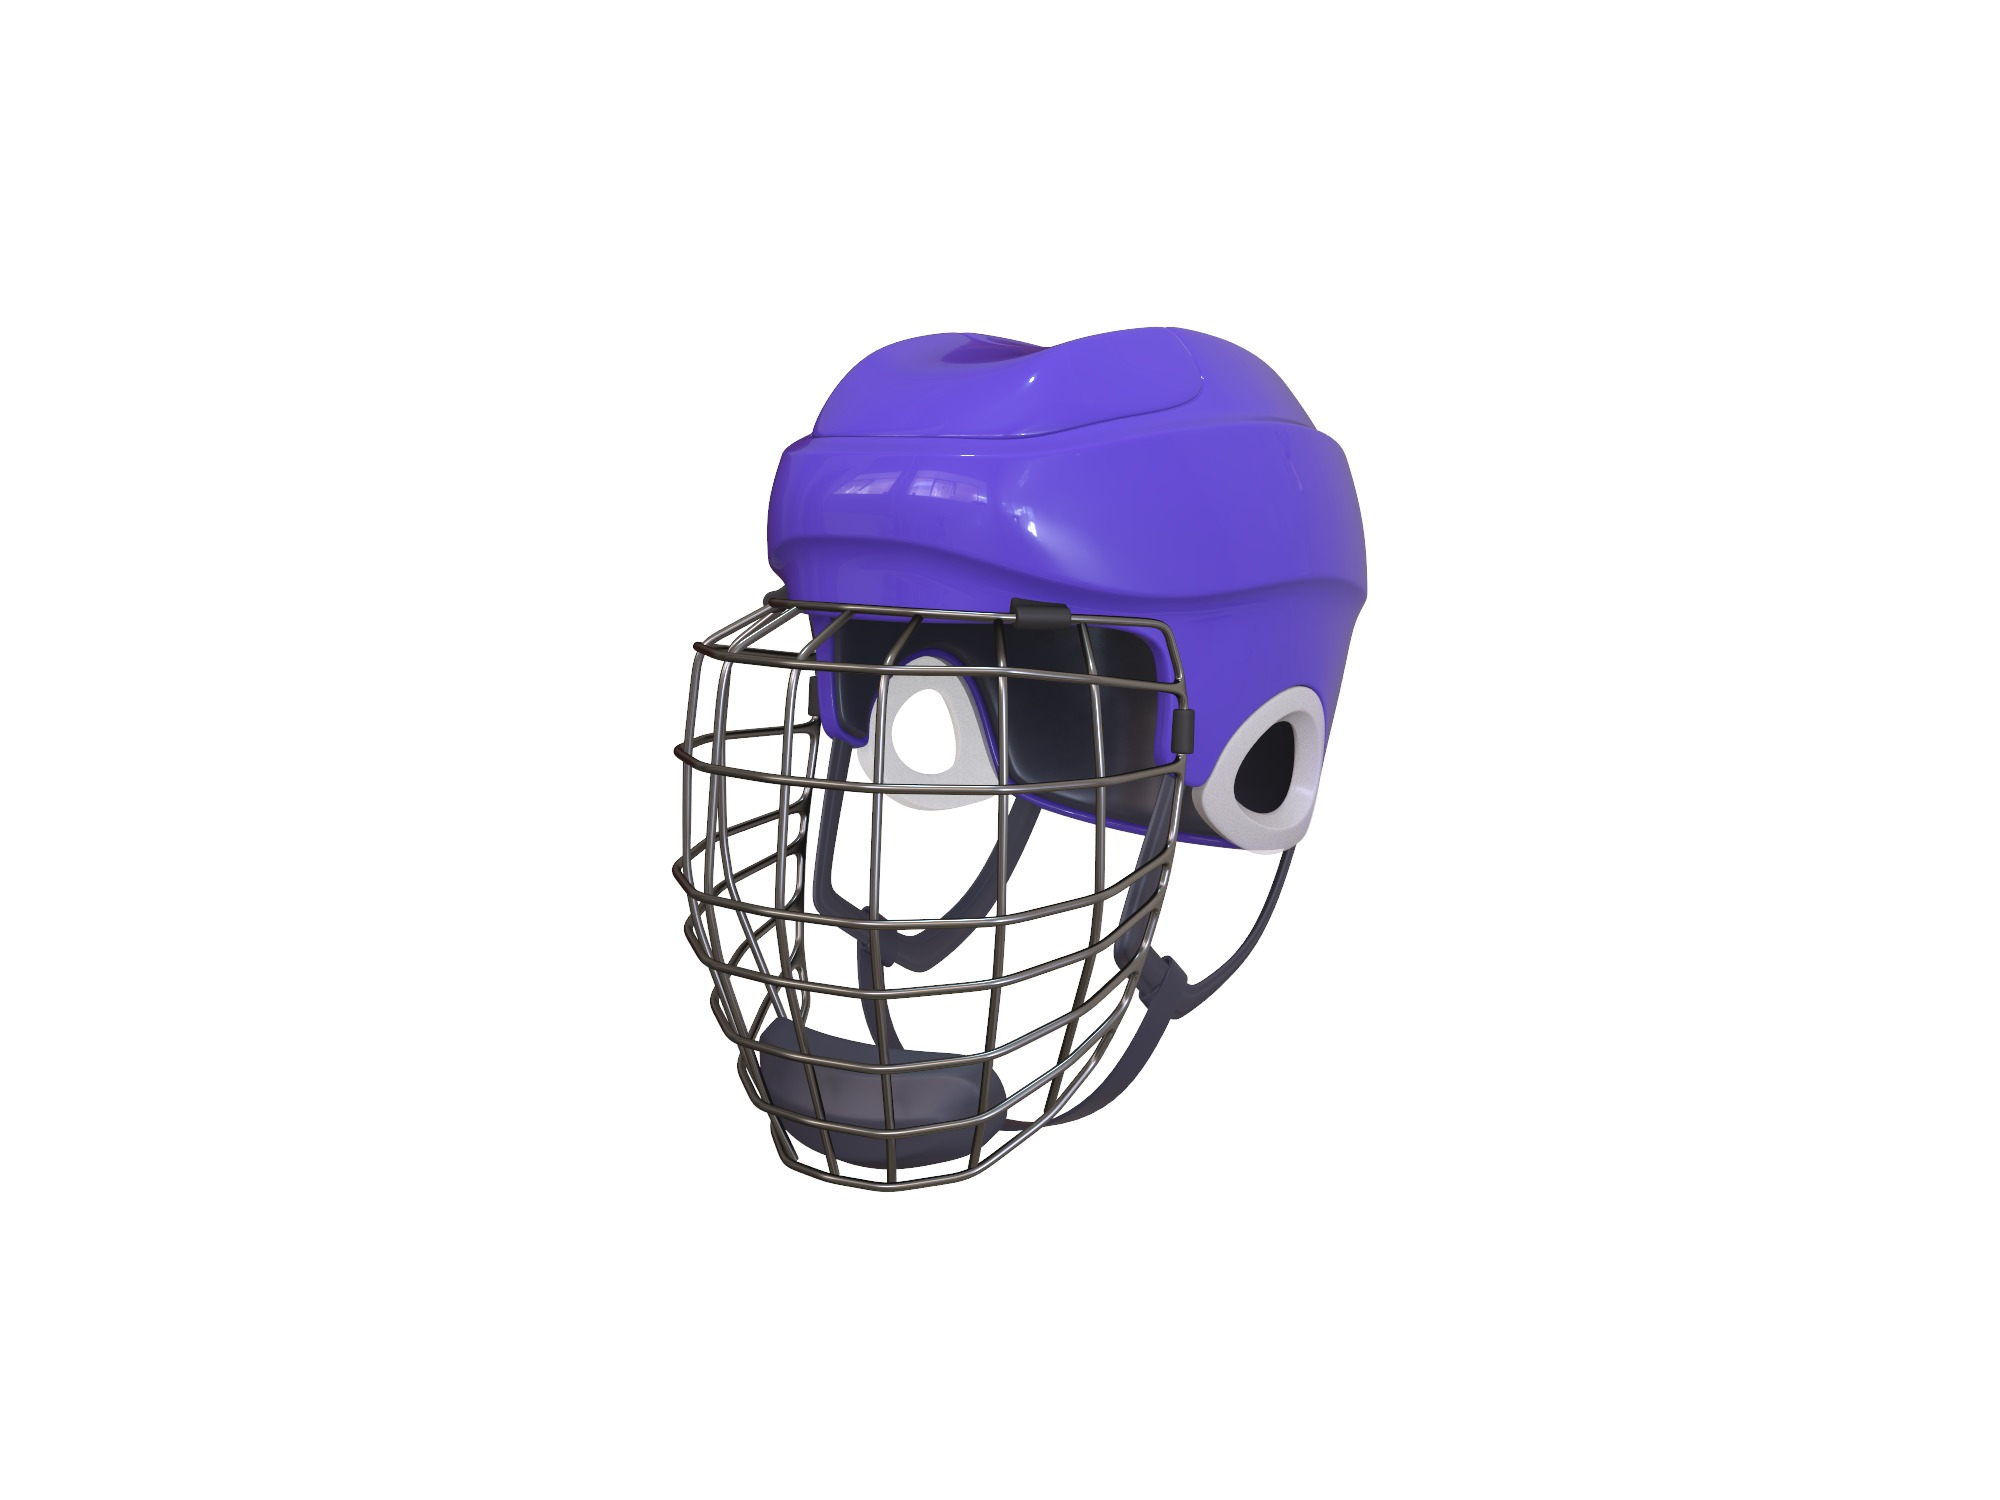 Hockey helmet - 3D design by Vectary assets Jun 4, 2018